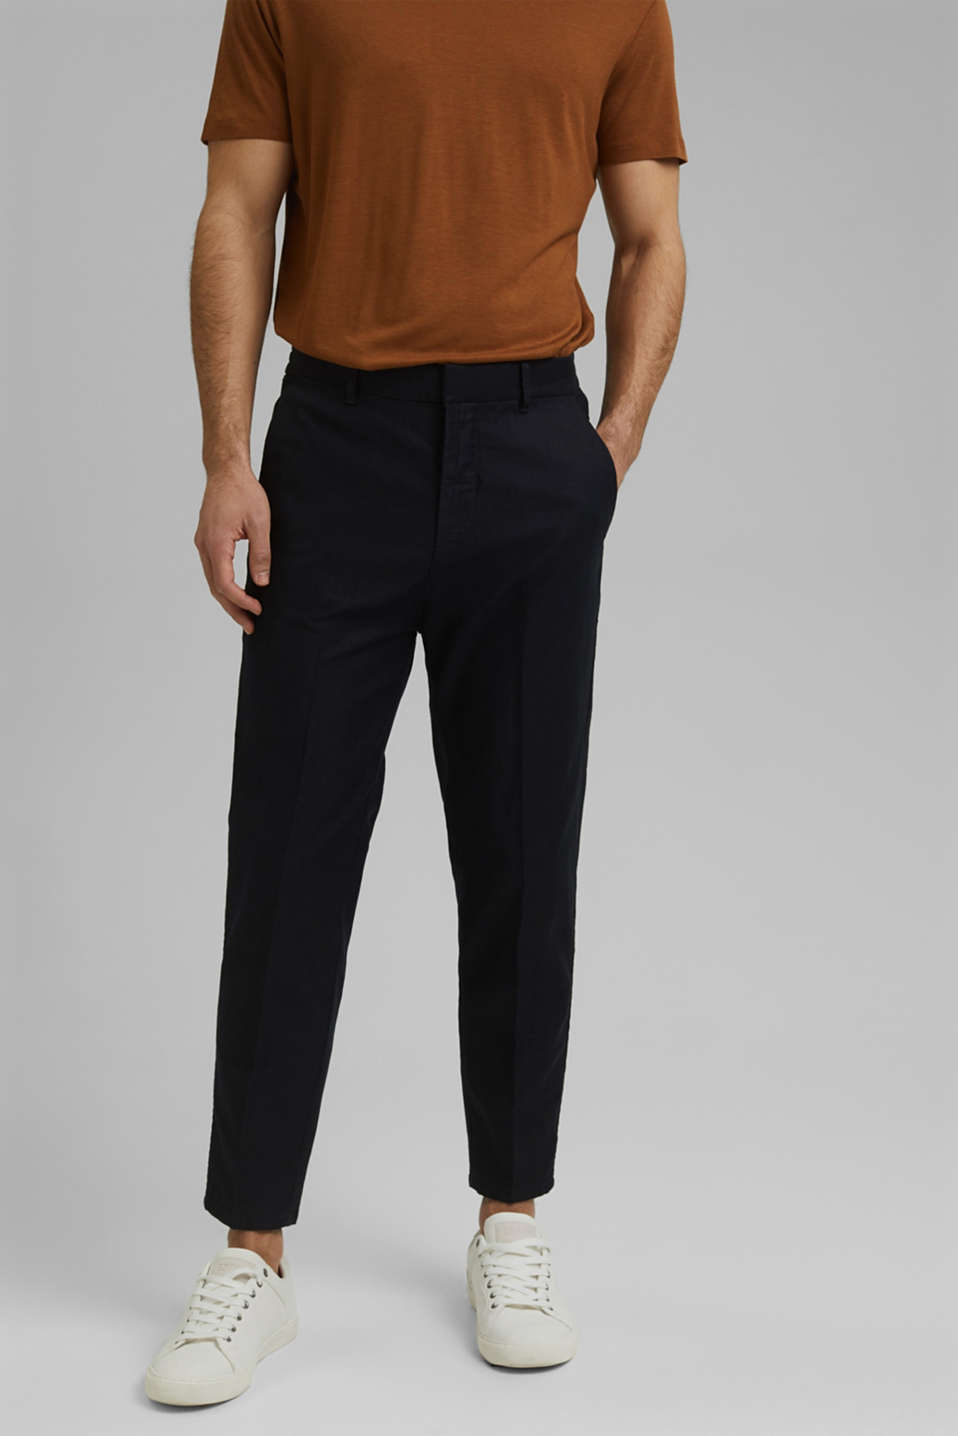 Esprit - Chino tracksuit bottoms in a linen/organic cotton blend